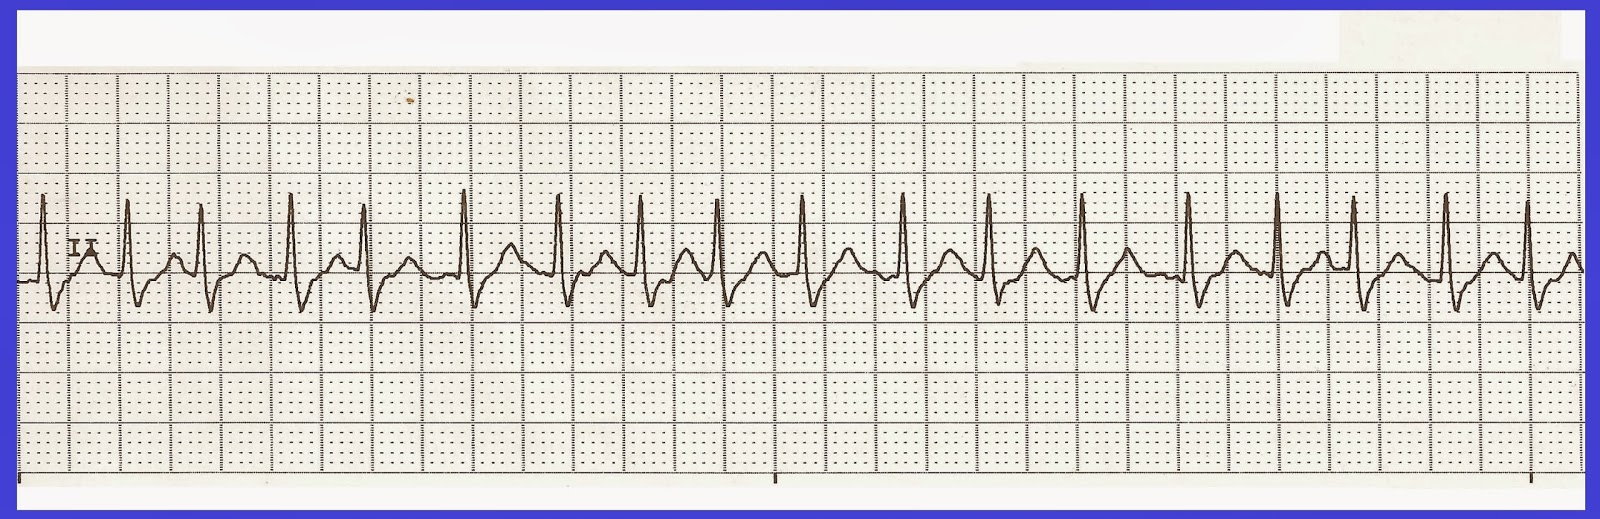 Impertinent image in ekg practice strips printable